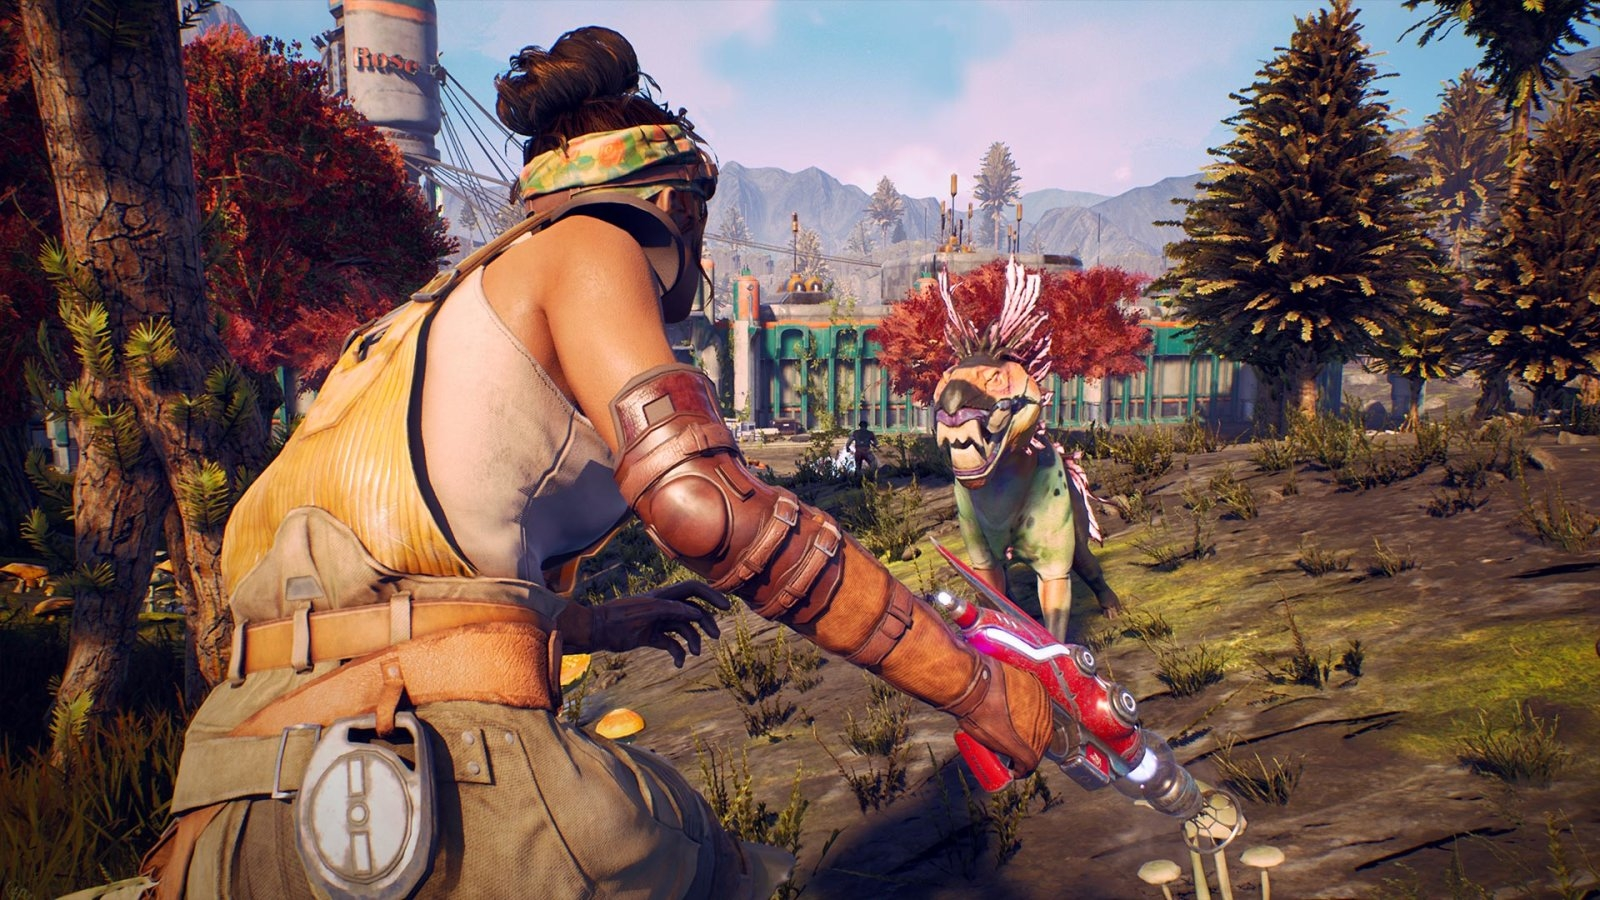 'The Outer Worlds' comes to Nintendo Switch on March 6th   DeviceDaily.com